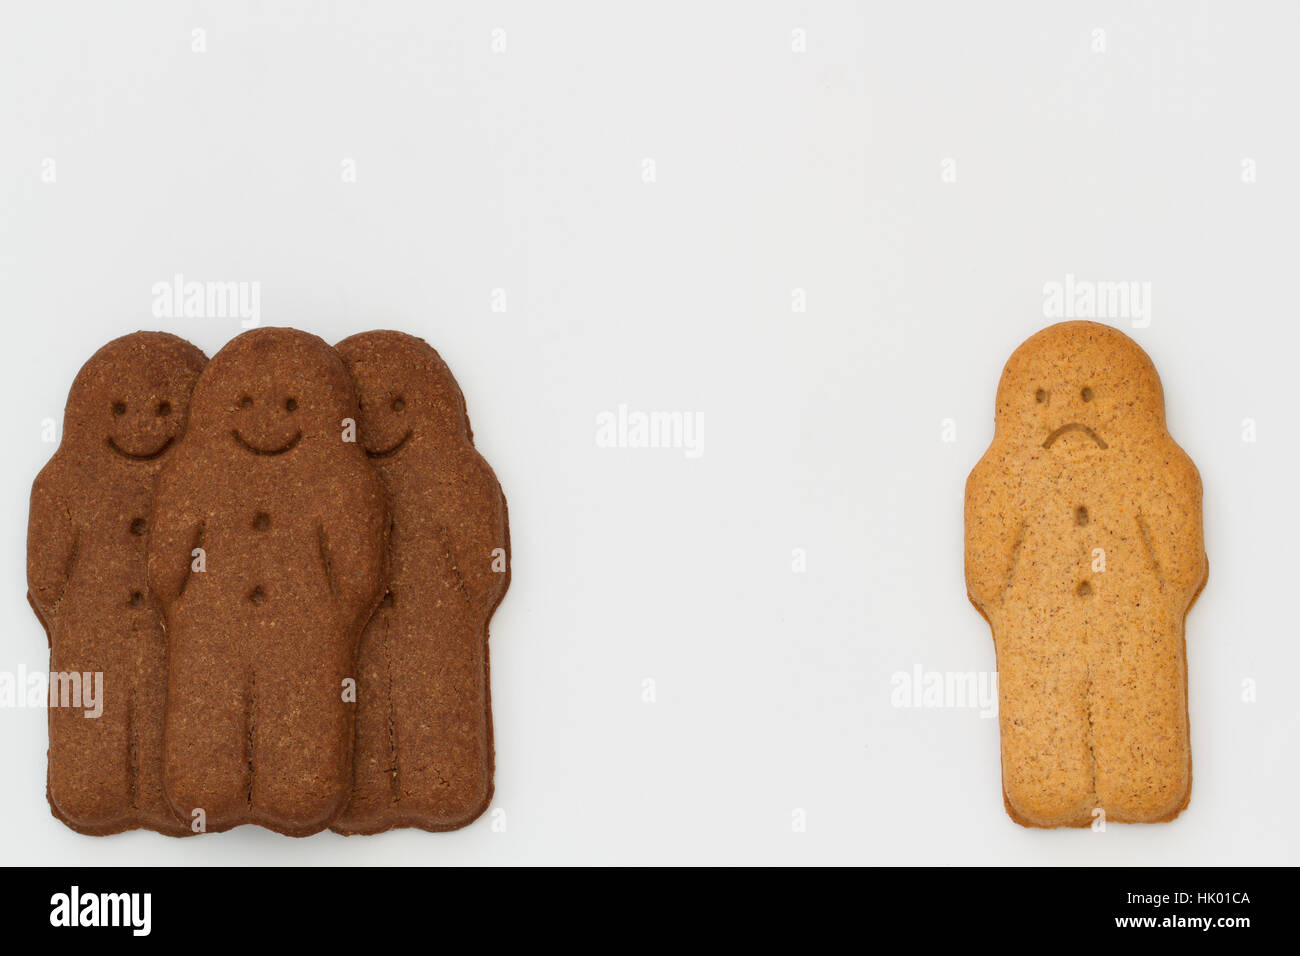 Groups of black and white gingerbread with a person isolated from the group representing racial discord and division. - Stock Image